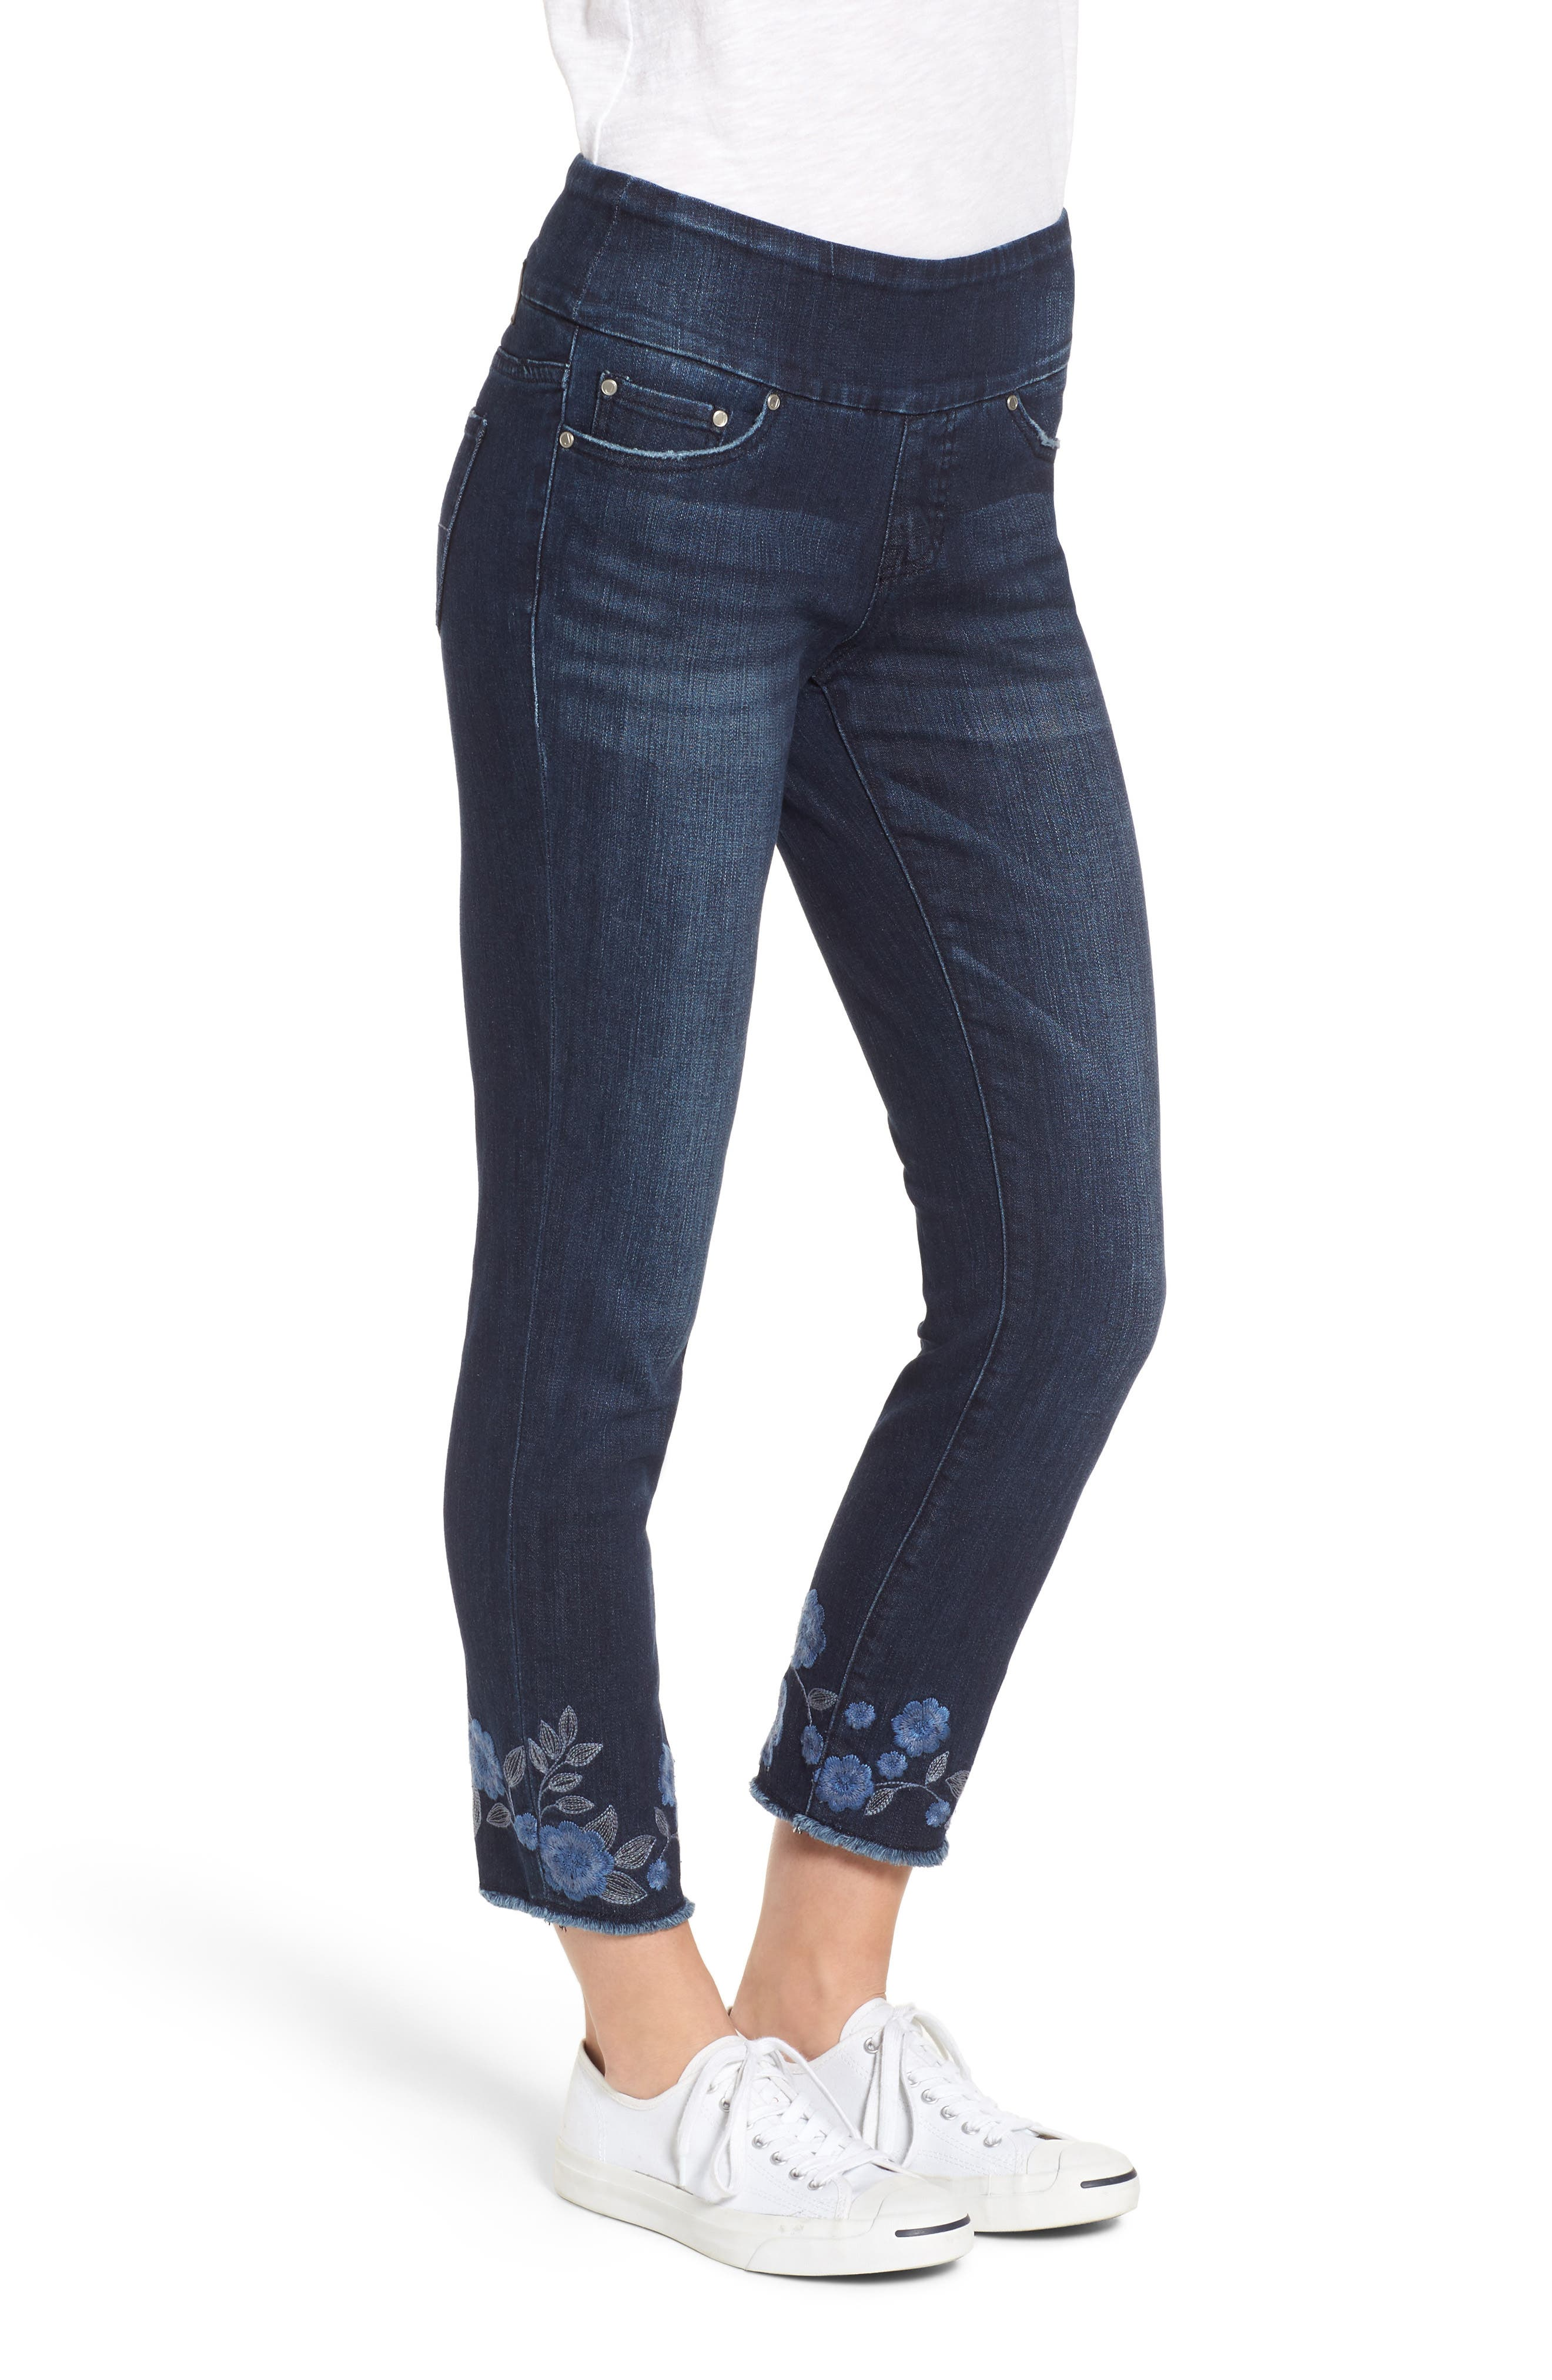 Amelia Embroidered Slim Ankle Jeans,                             Alternate thumbnail 3, color,                             402